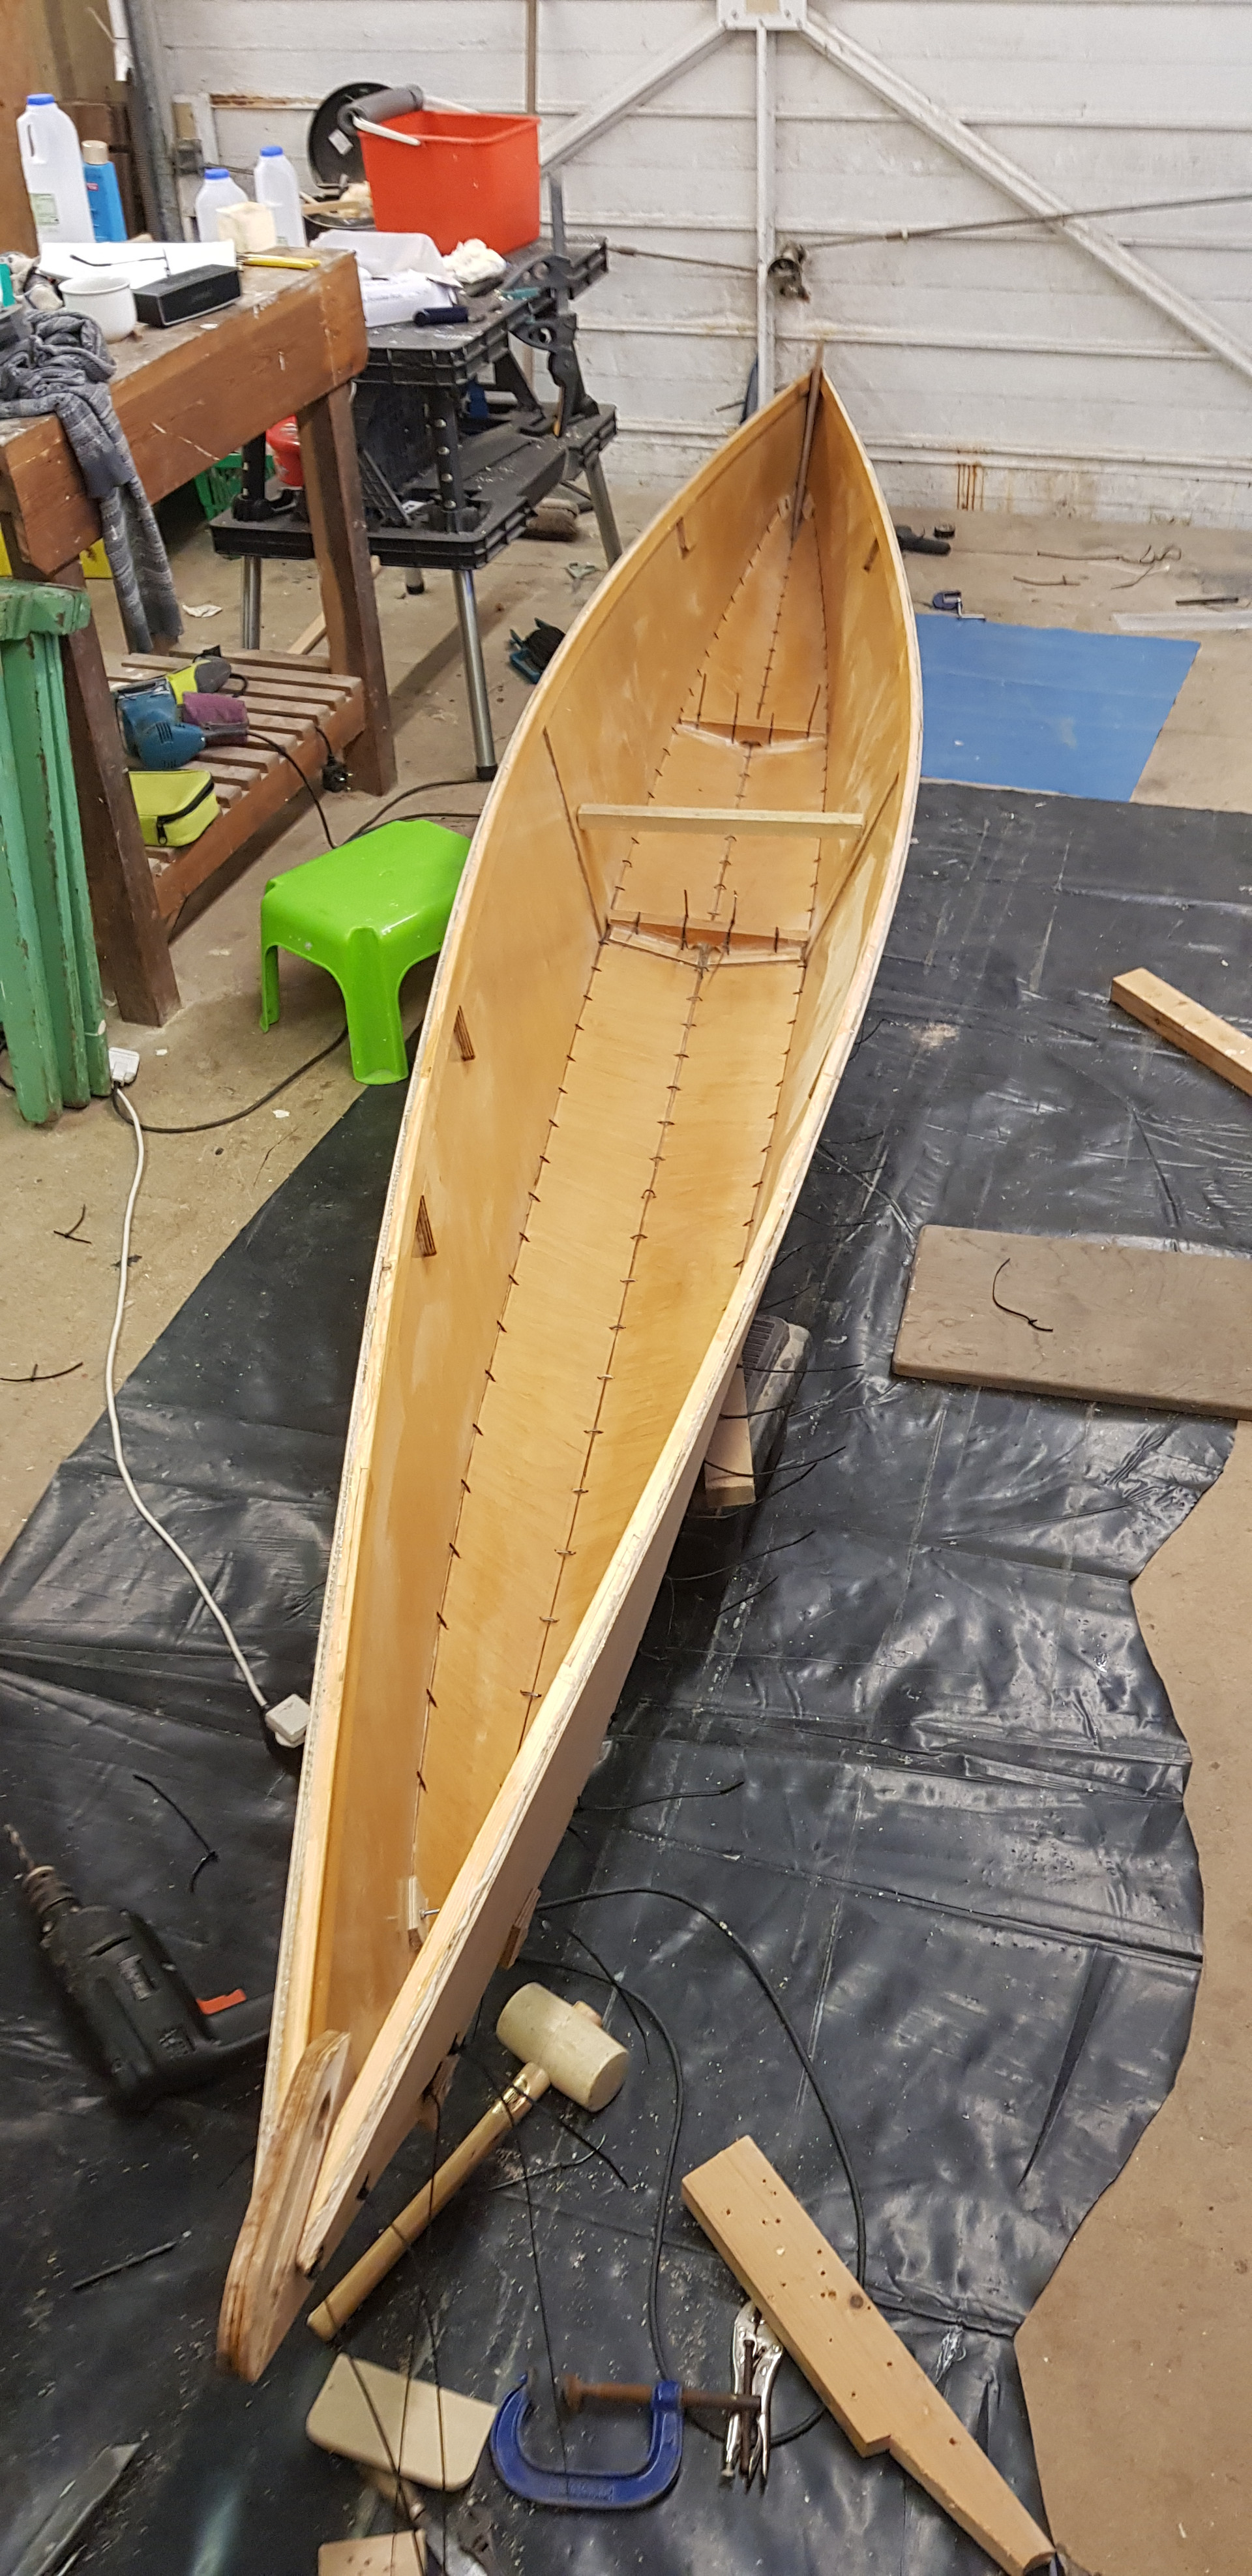 The hull takes shape - held together with cable ties